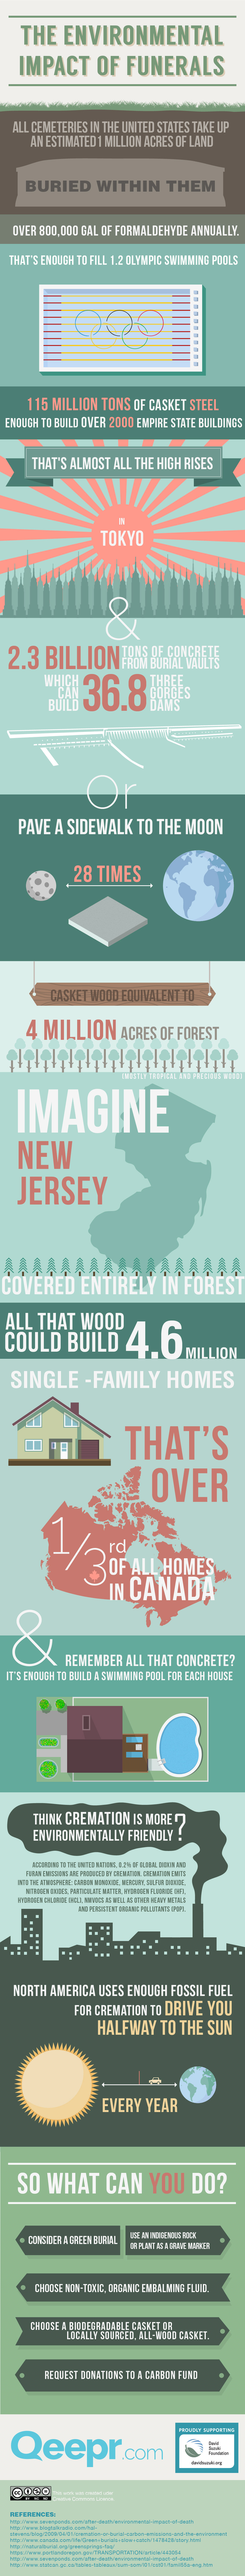 Environmental Impact of Funerals infographic